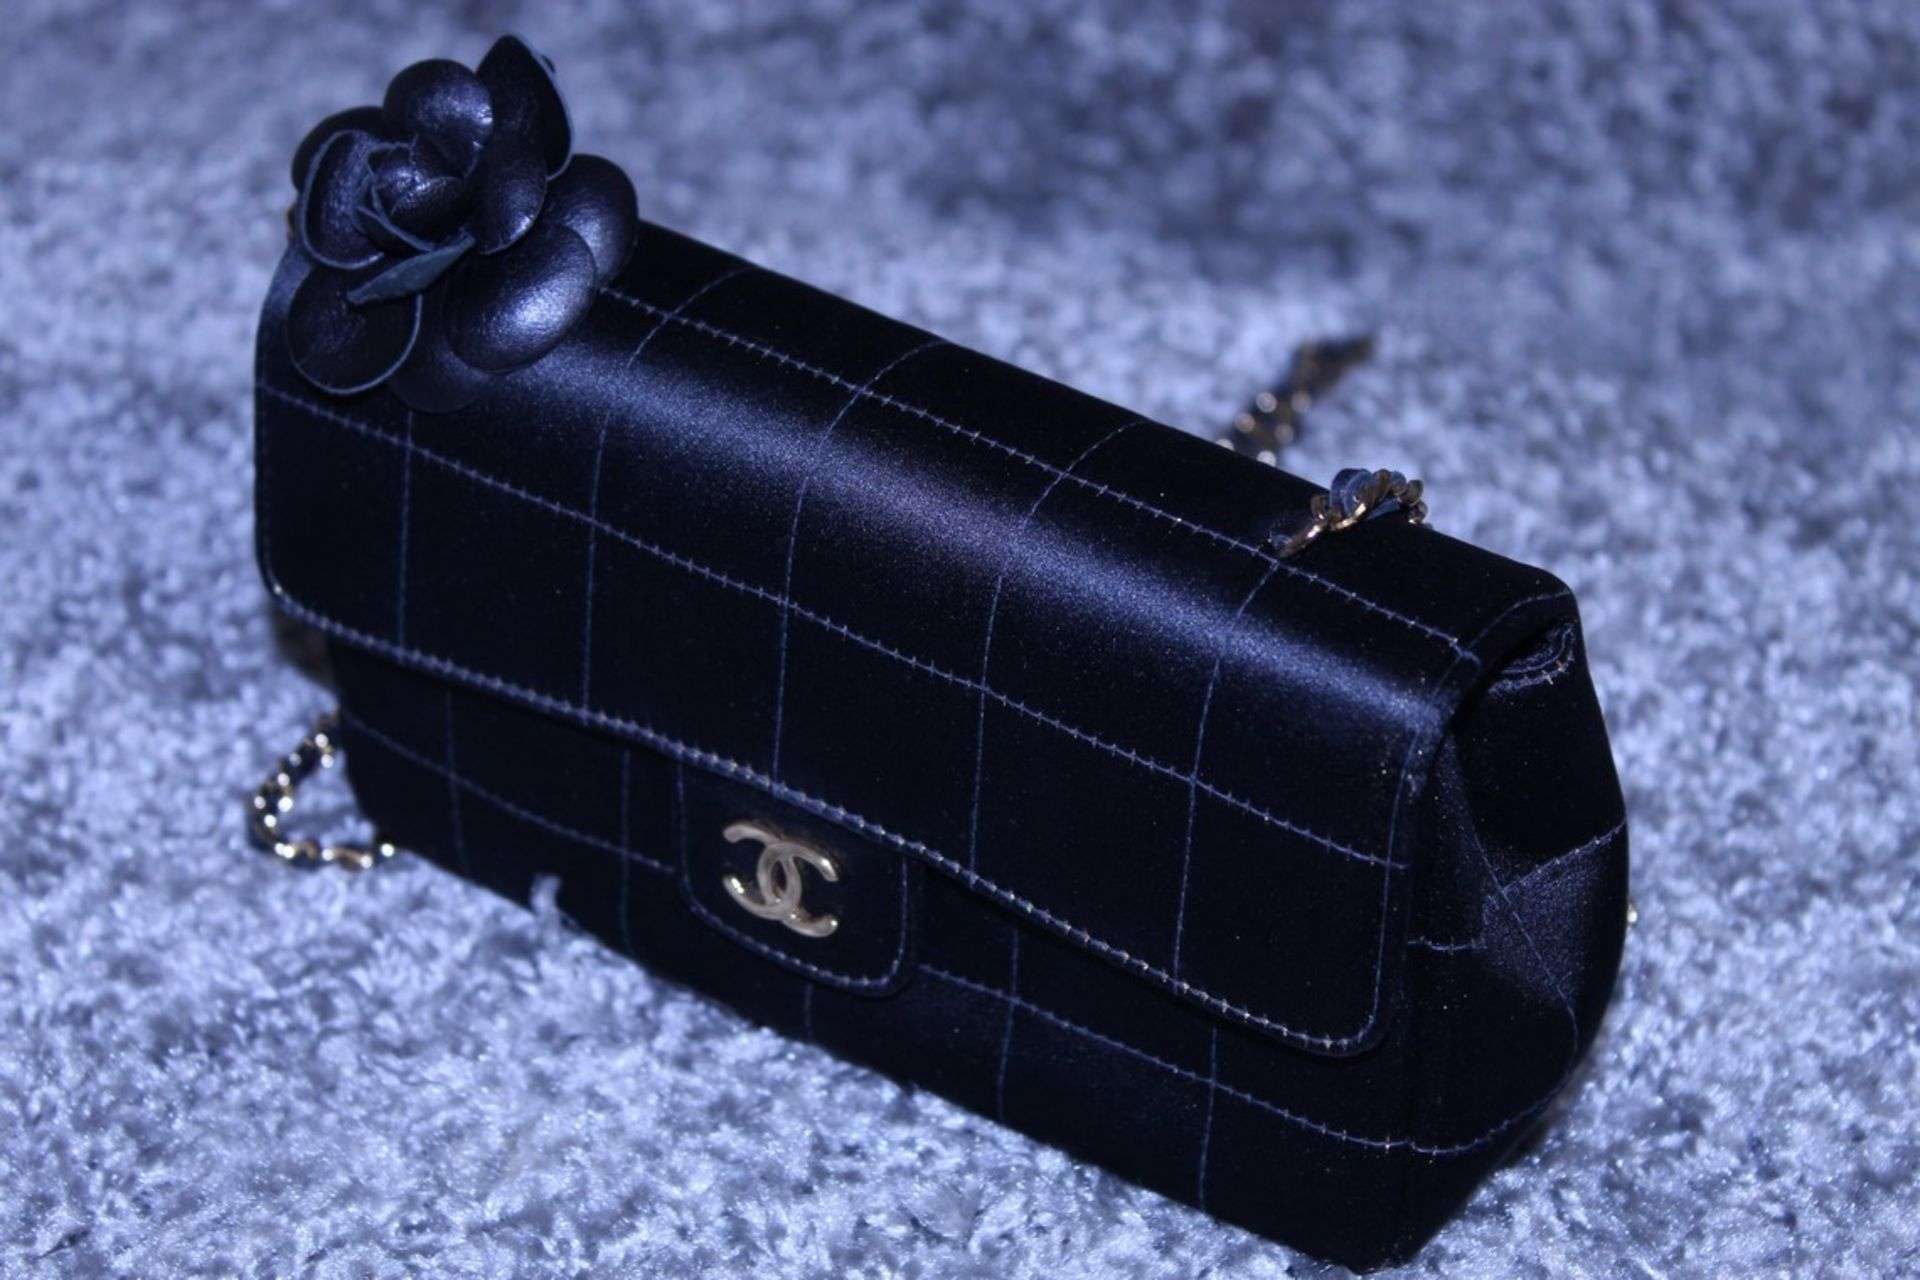 RRP £3,500 Chanel Timess Silk Bag, Black Canvas Square Quilted, Gold Chain Handles (Production - Image 3 of 3